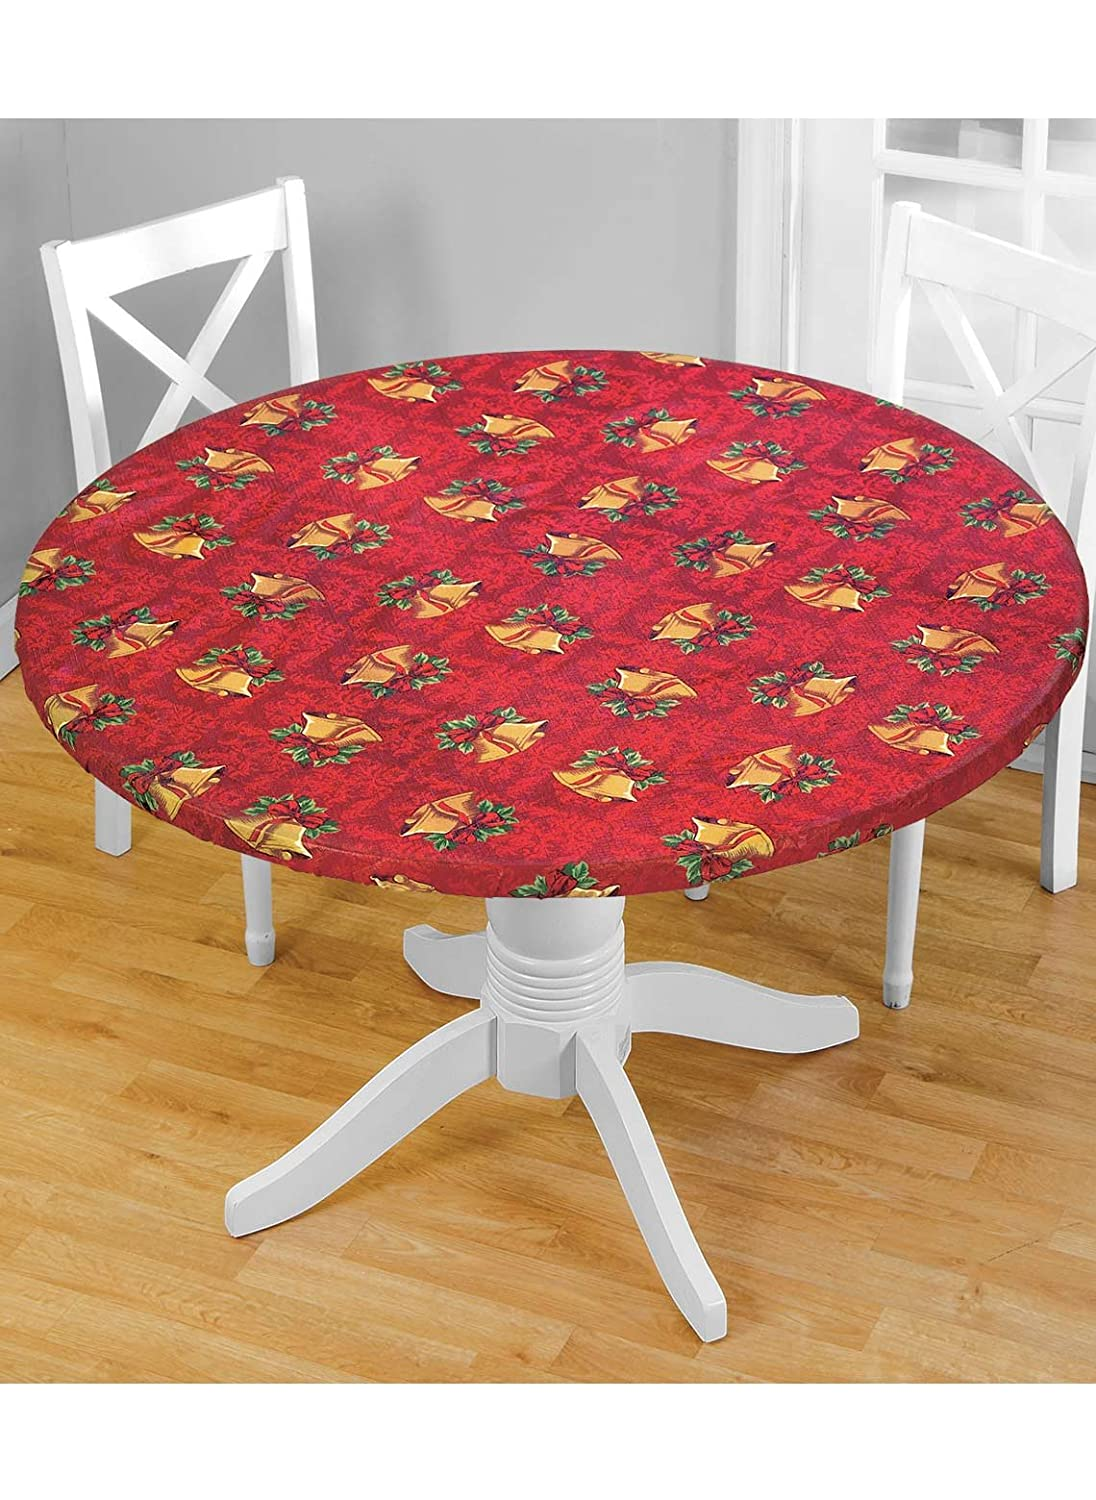 Fitted Tablecloths For Oval Tables Round With Fitted